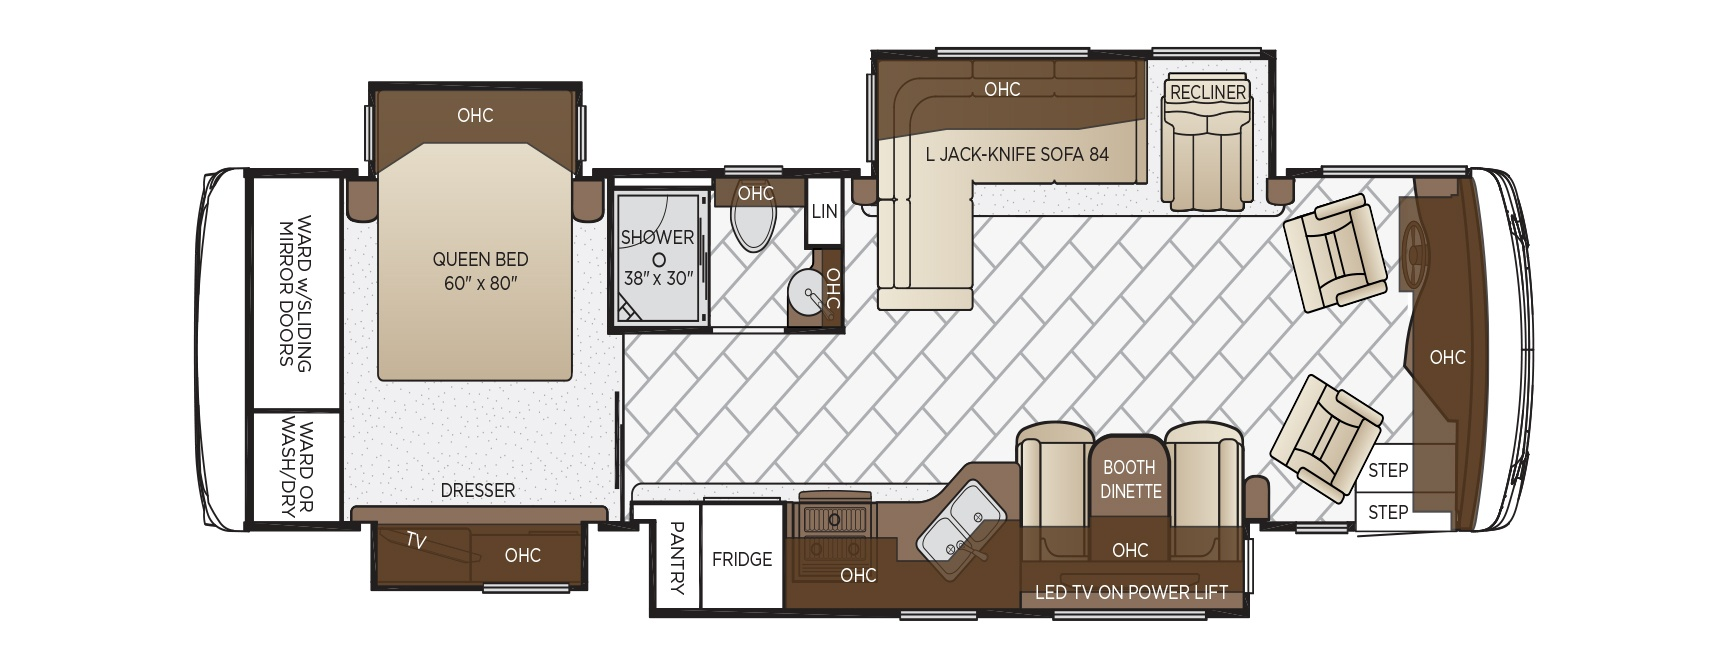 ventana le floor plan options newmar